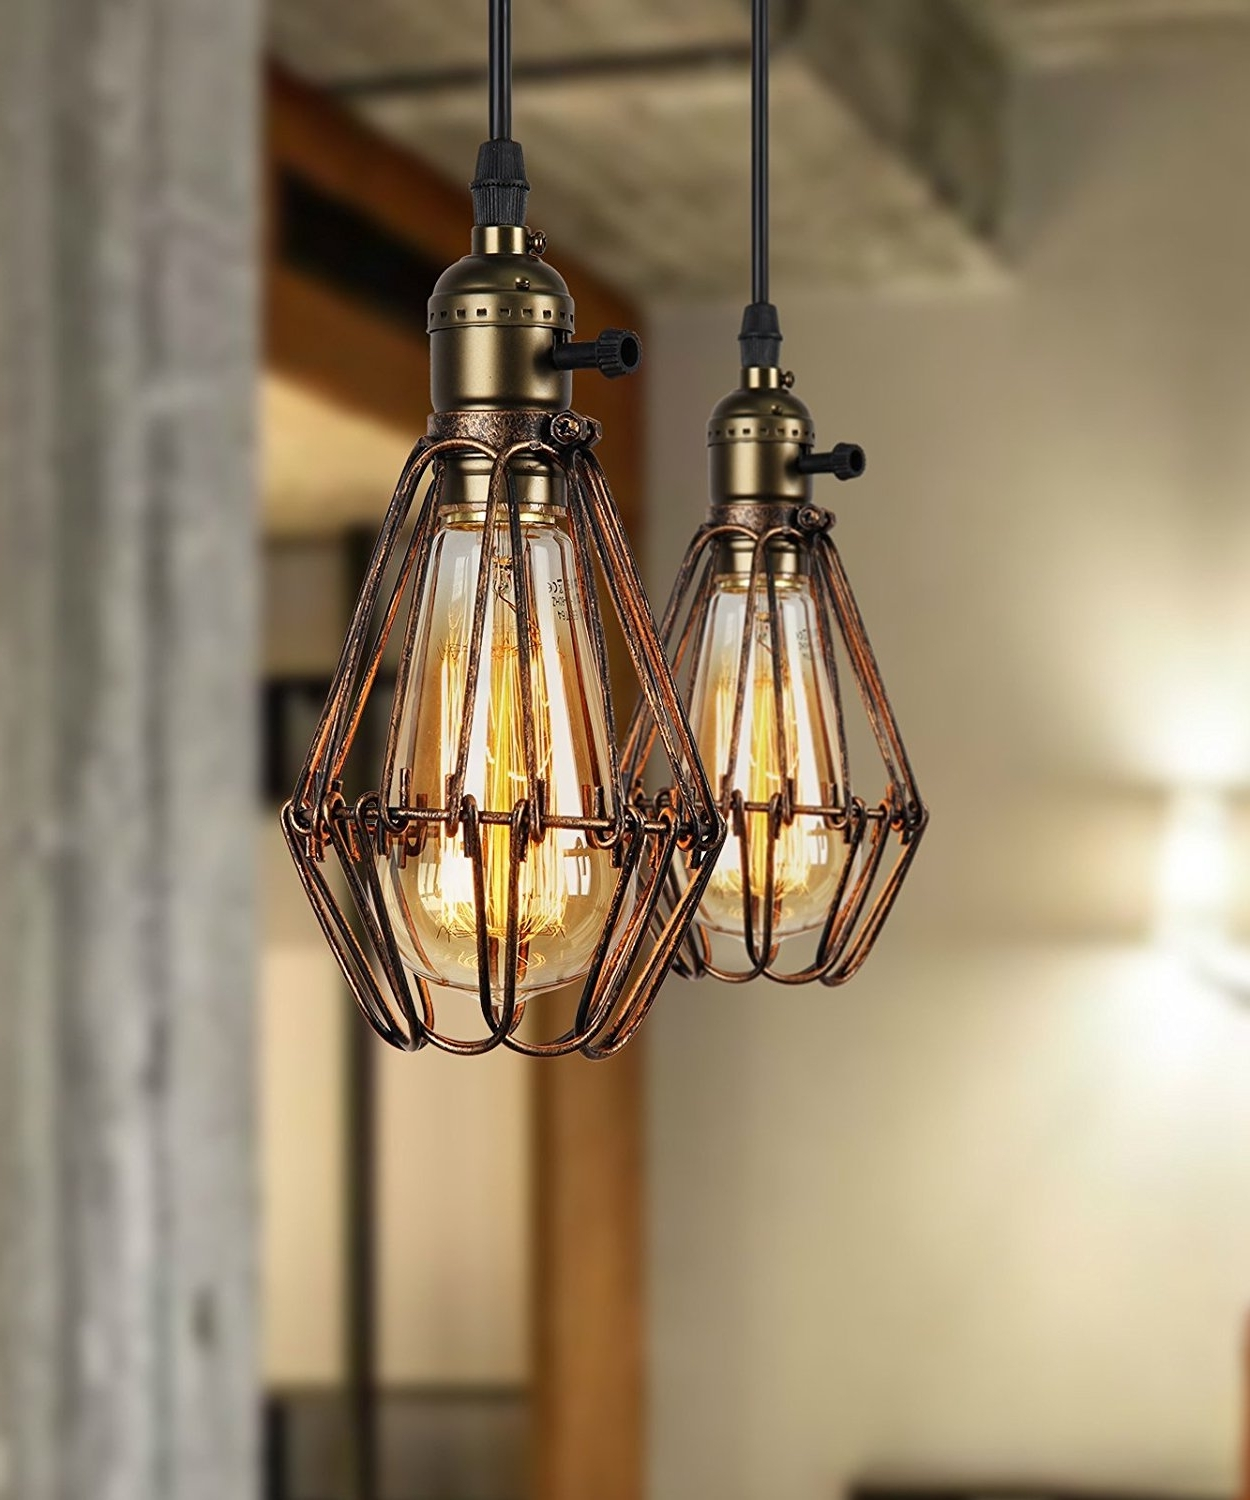 Outdoor Hanging Lights From Australia Intended For Famous Diy : Outdoor Hanging Lights Very Characteristic Rustic Pendant (View 18 of 20)